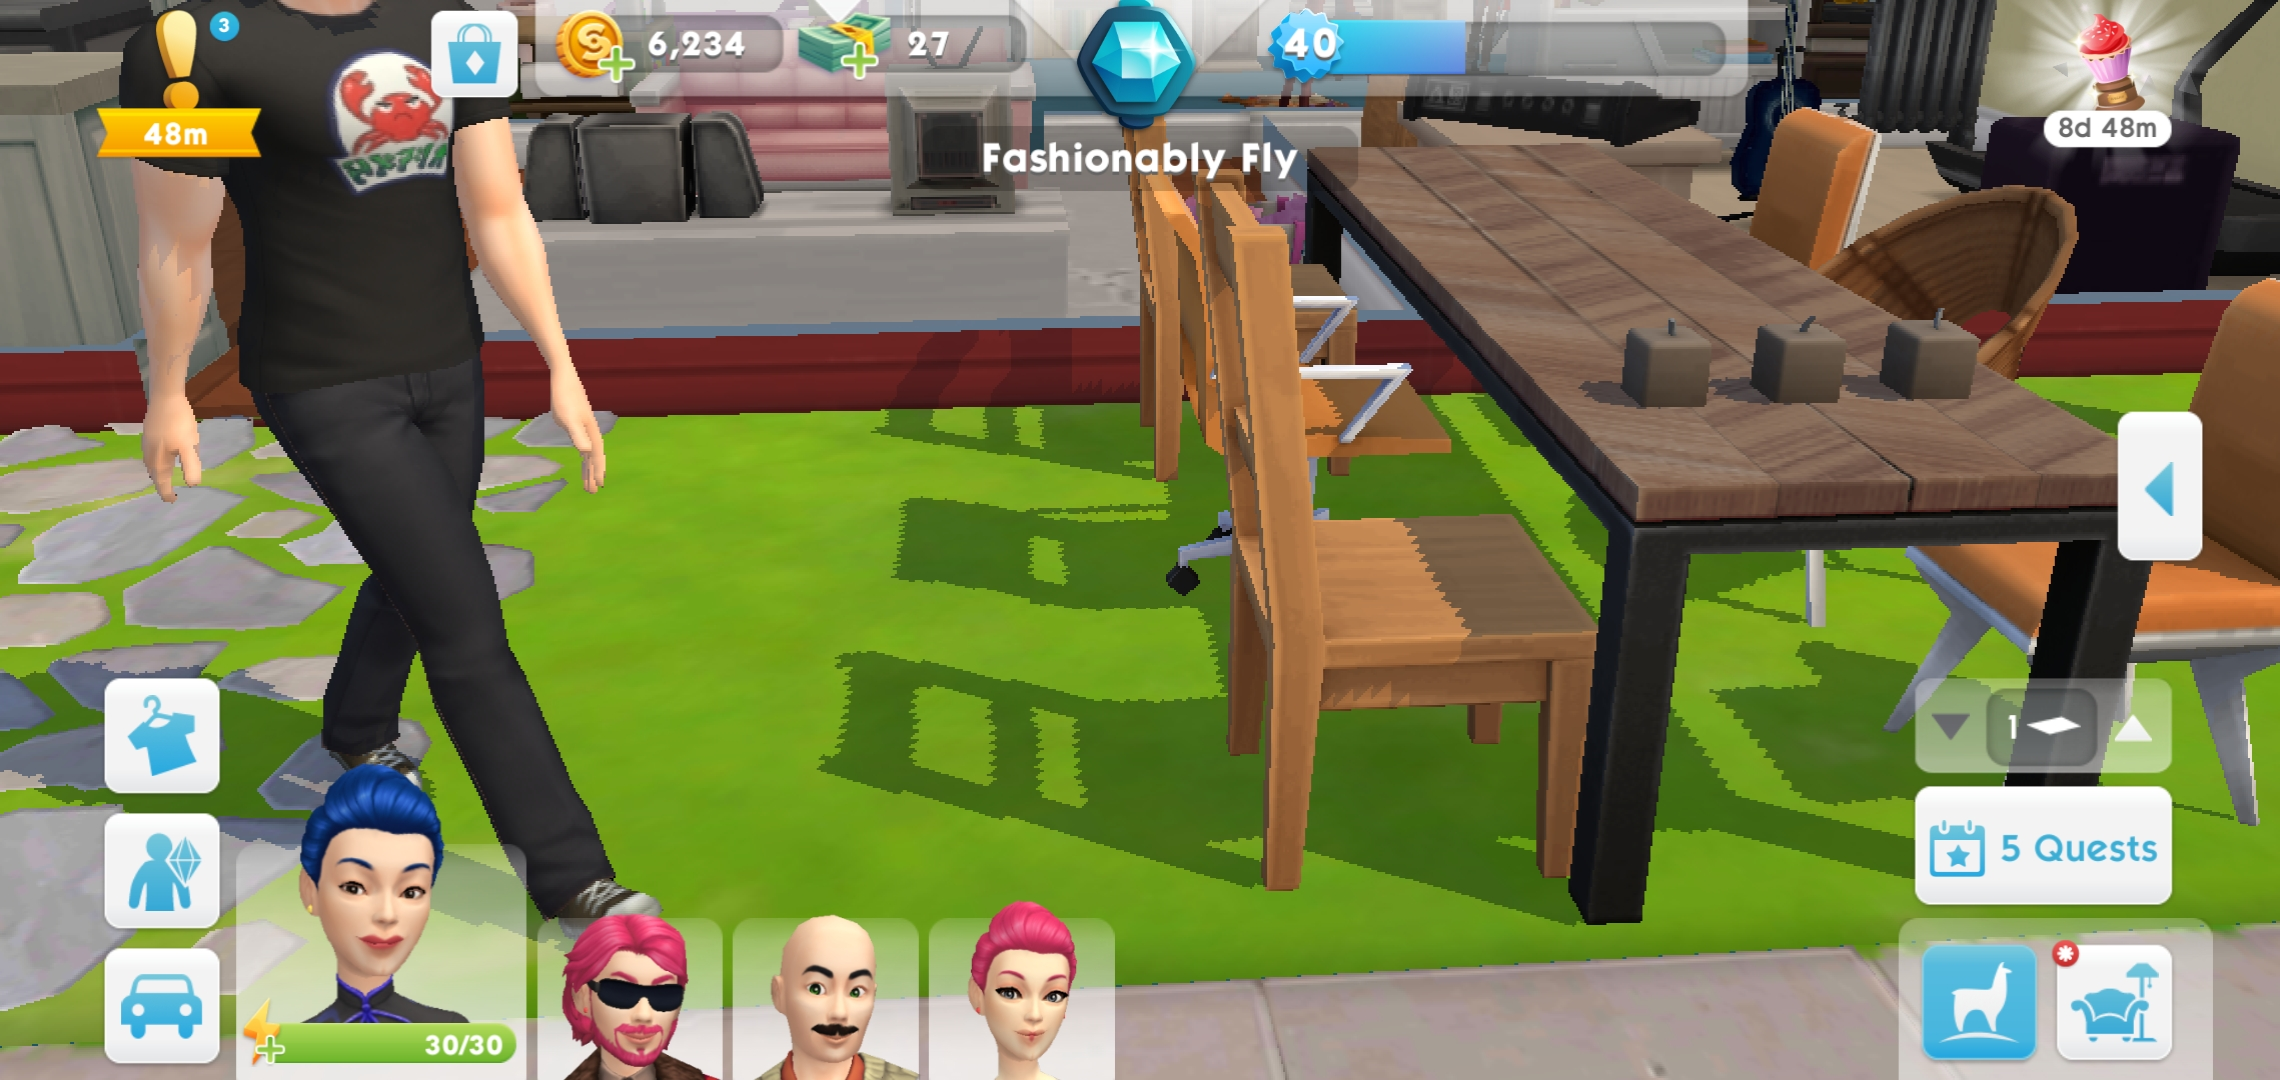 Screenshot_2020-06-17-23-11-28-846_com.ea.gp.simsmobile.jpg